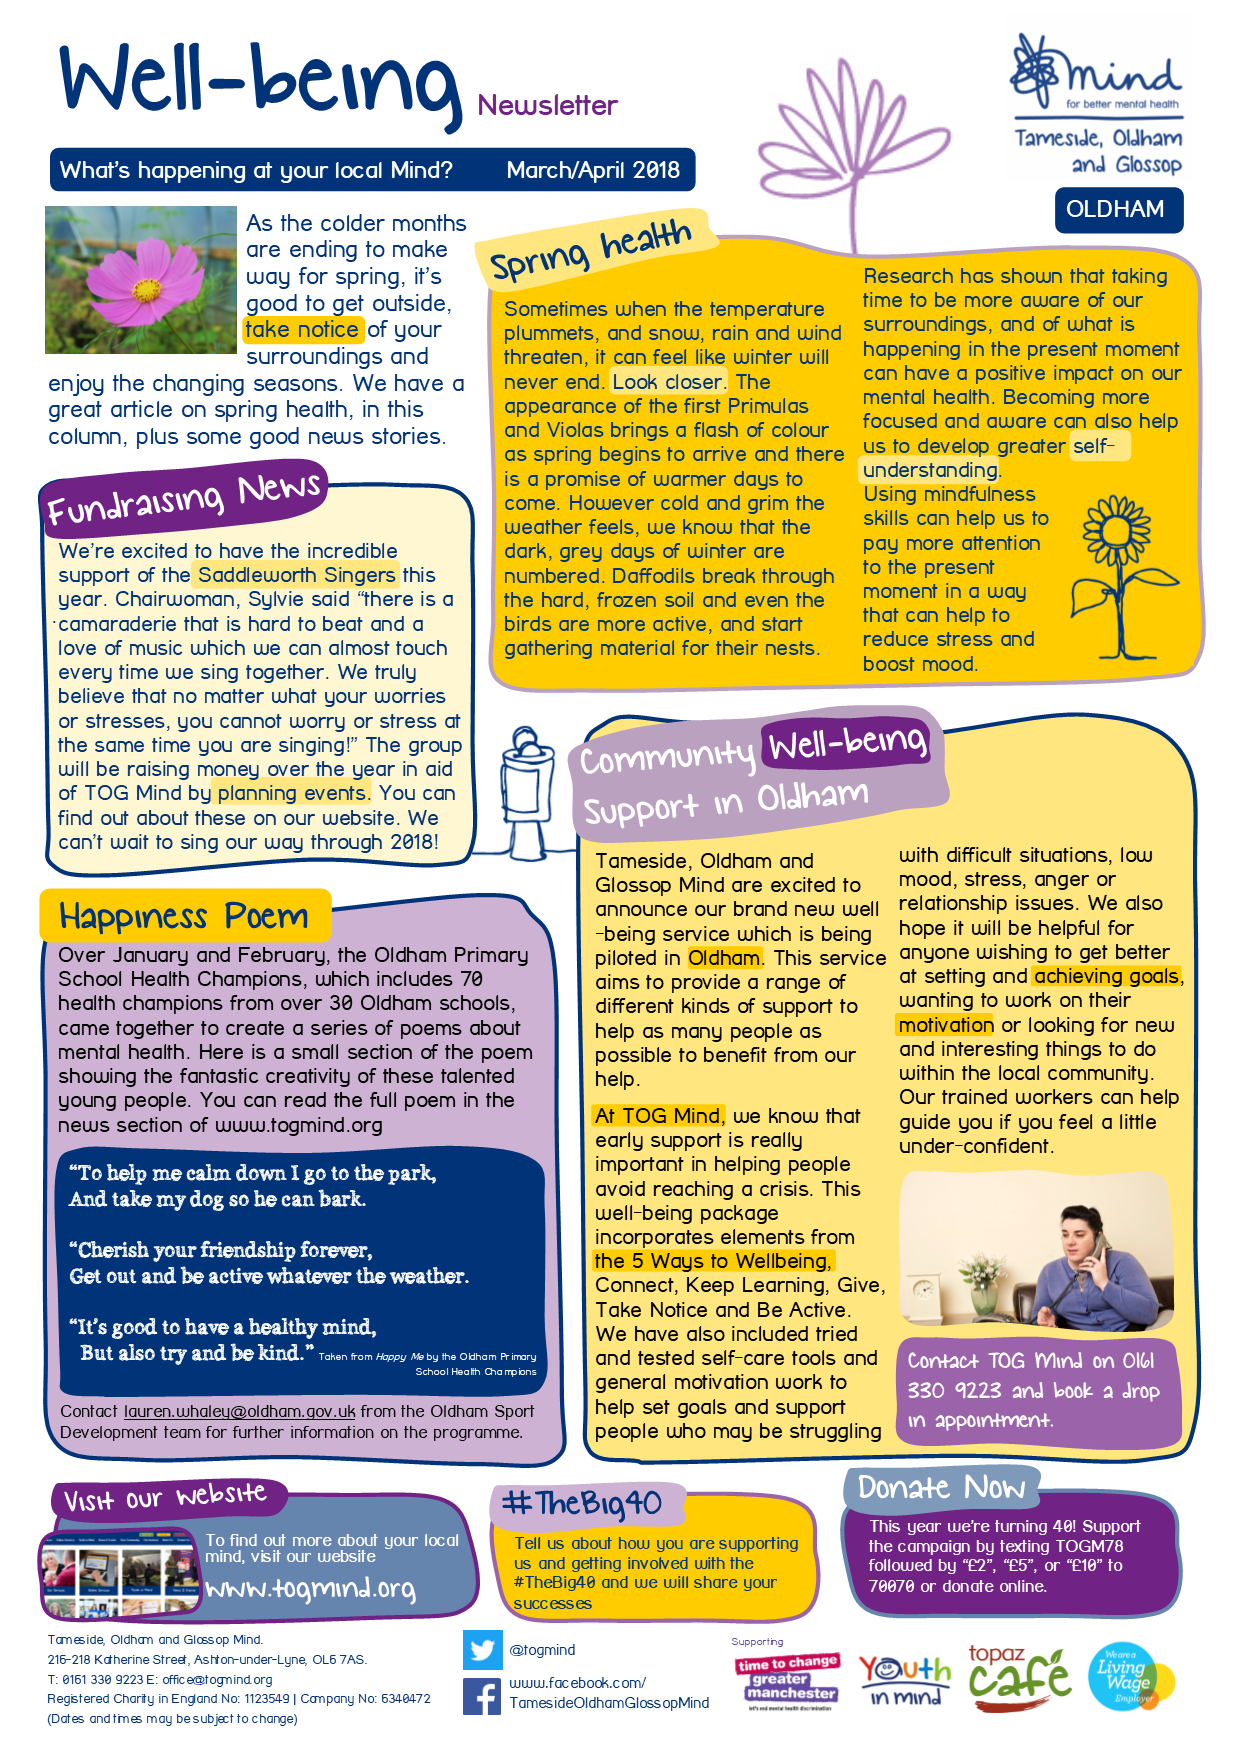 Wellbeing Column - Oldham - March / April